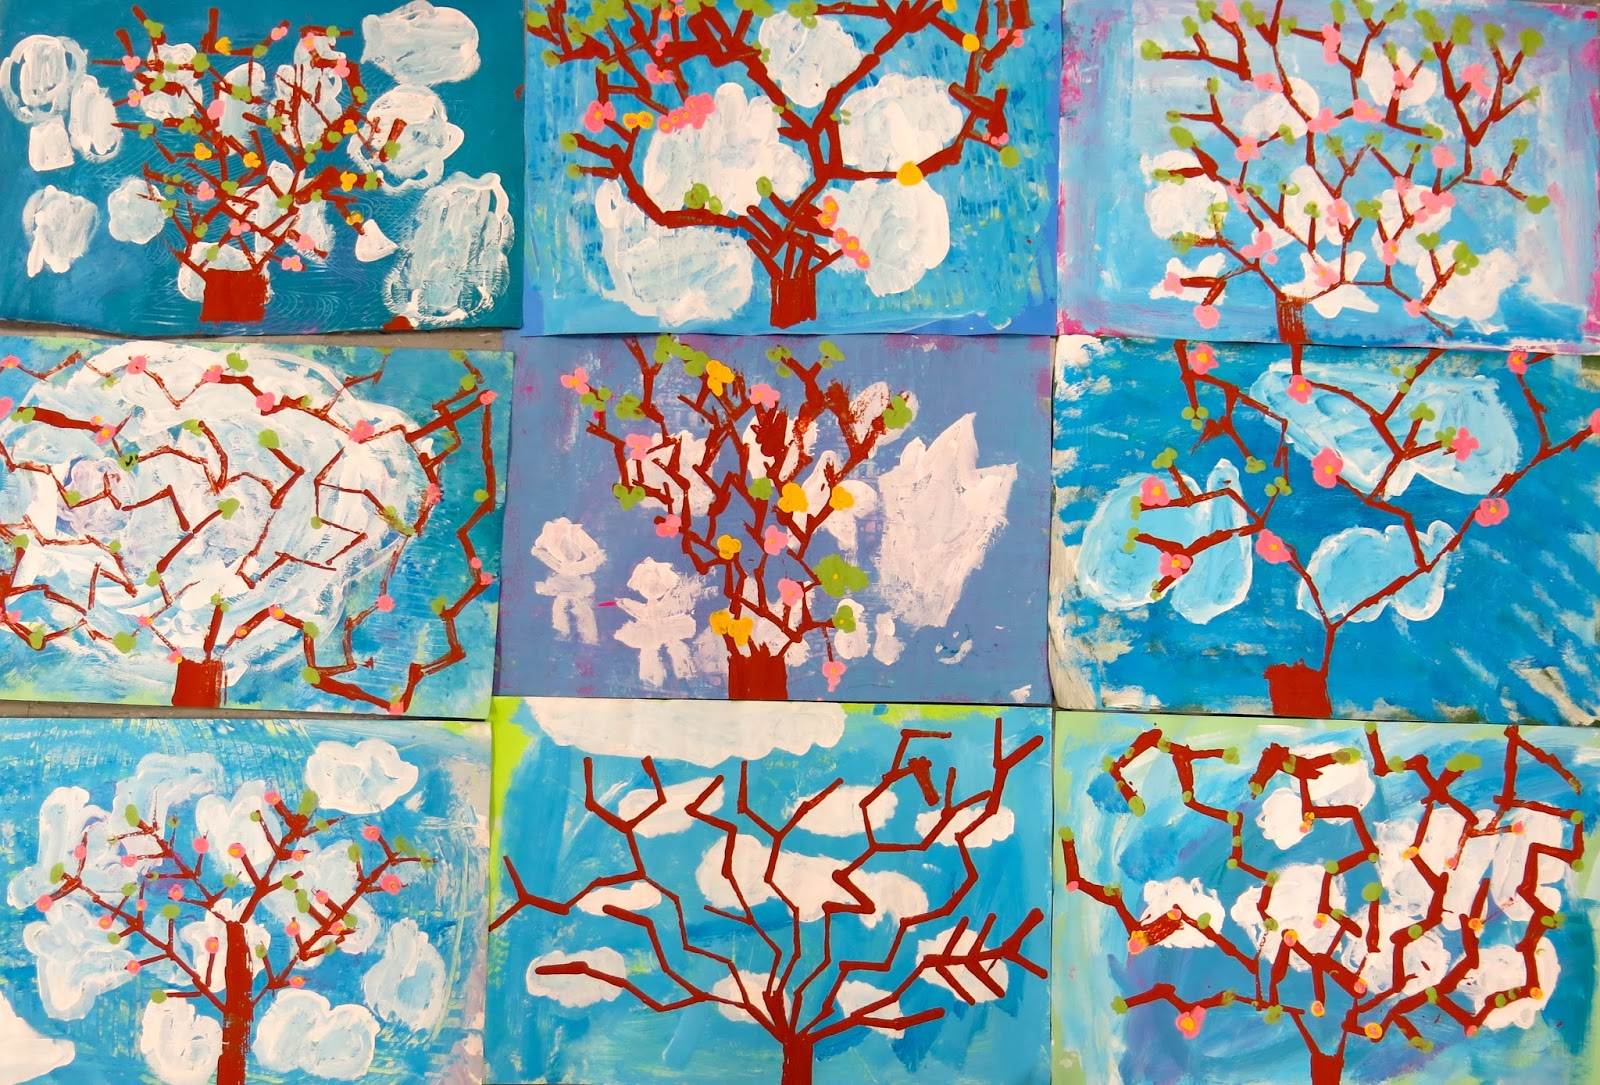 Cassie Stephens In The Art Room Springtime With Van Gogh And Charley Harper